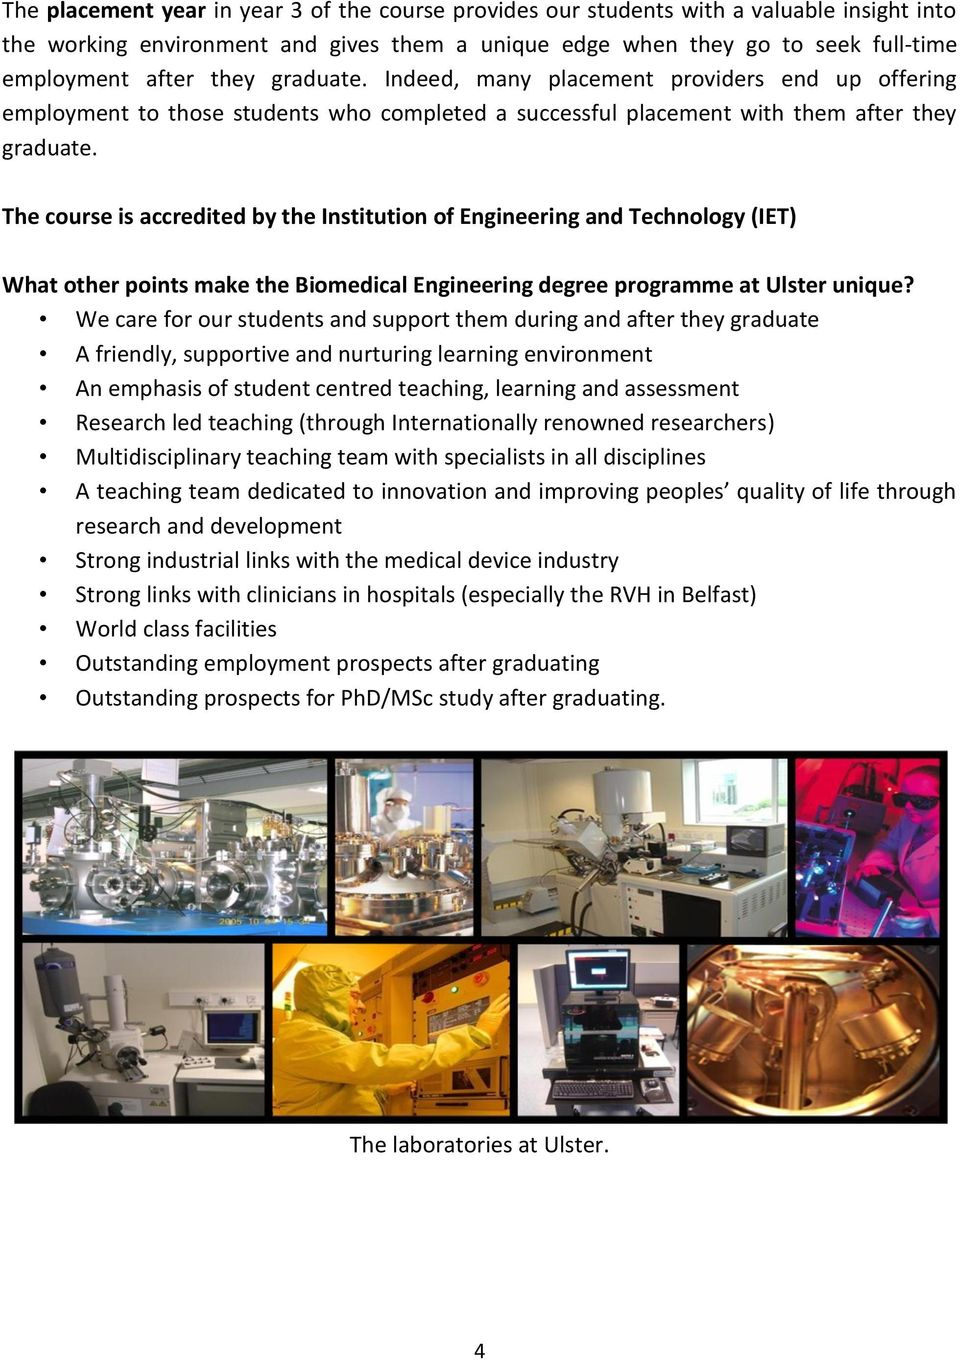 The course is accredited by the Institution of Engineering and Technology (IET) What other points make the Biomedical Engineering degree programme at Ulster unique?